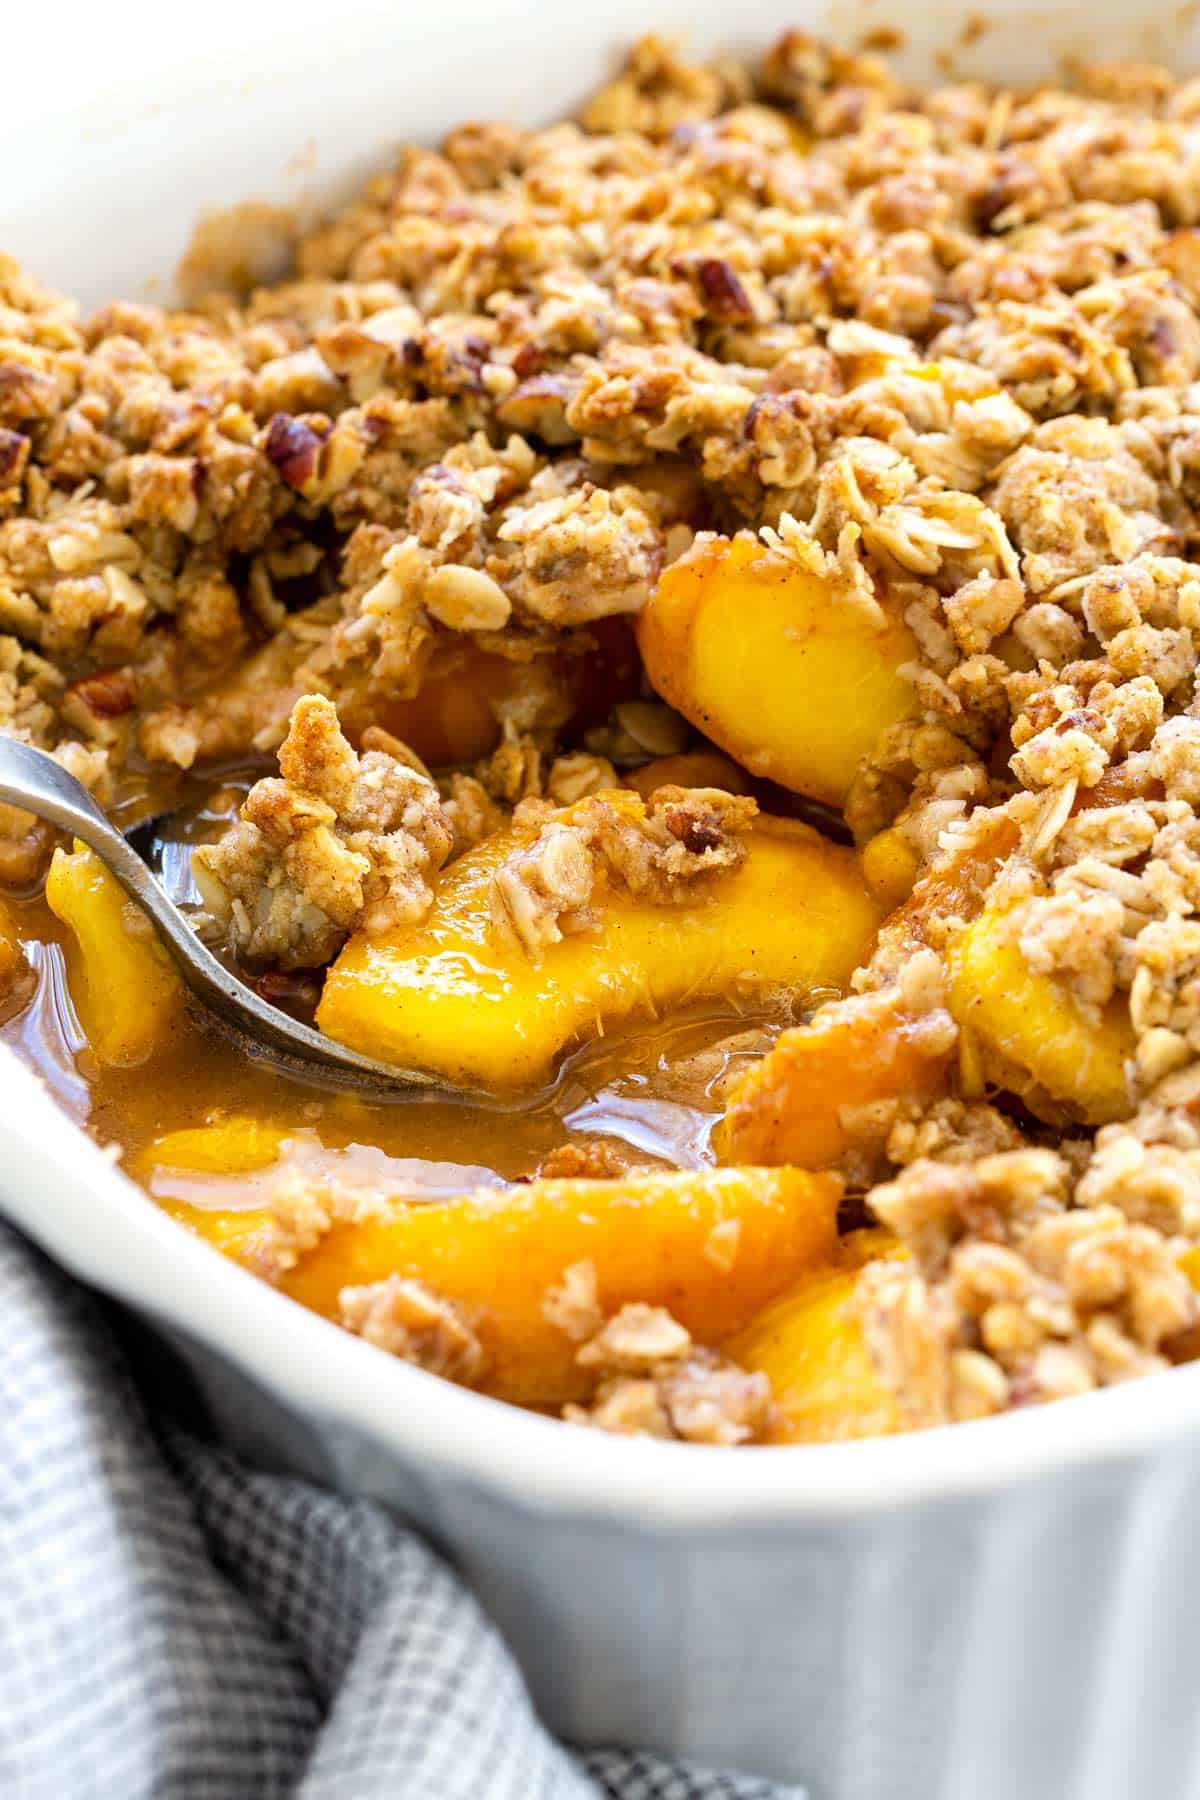 Peach crisp recipe made with fresh stone fruit and topped with a pecan-oat crumble. A delicious baked dessert using seasonal ingredients. #peachcrisp #peaches #dessert